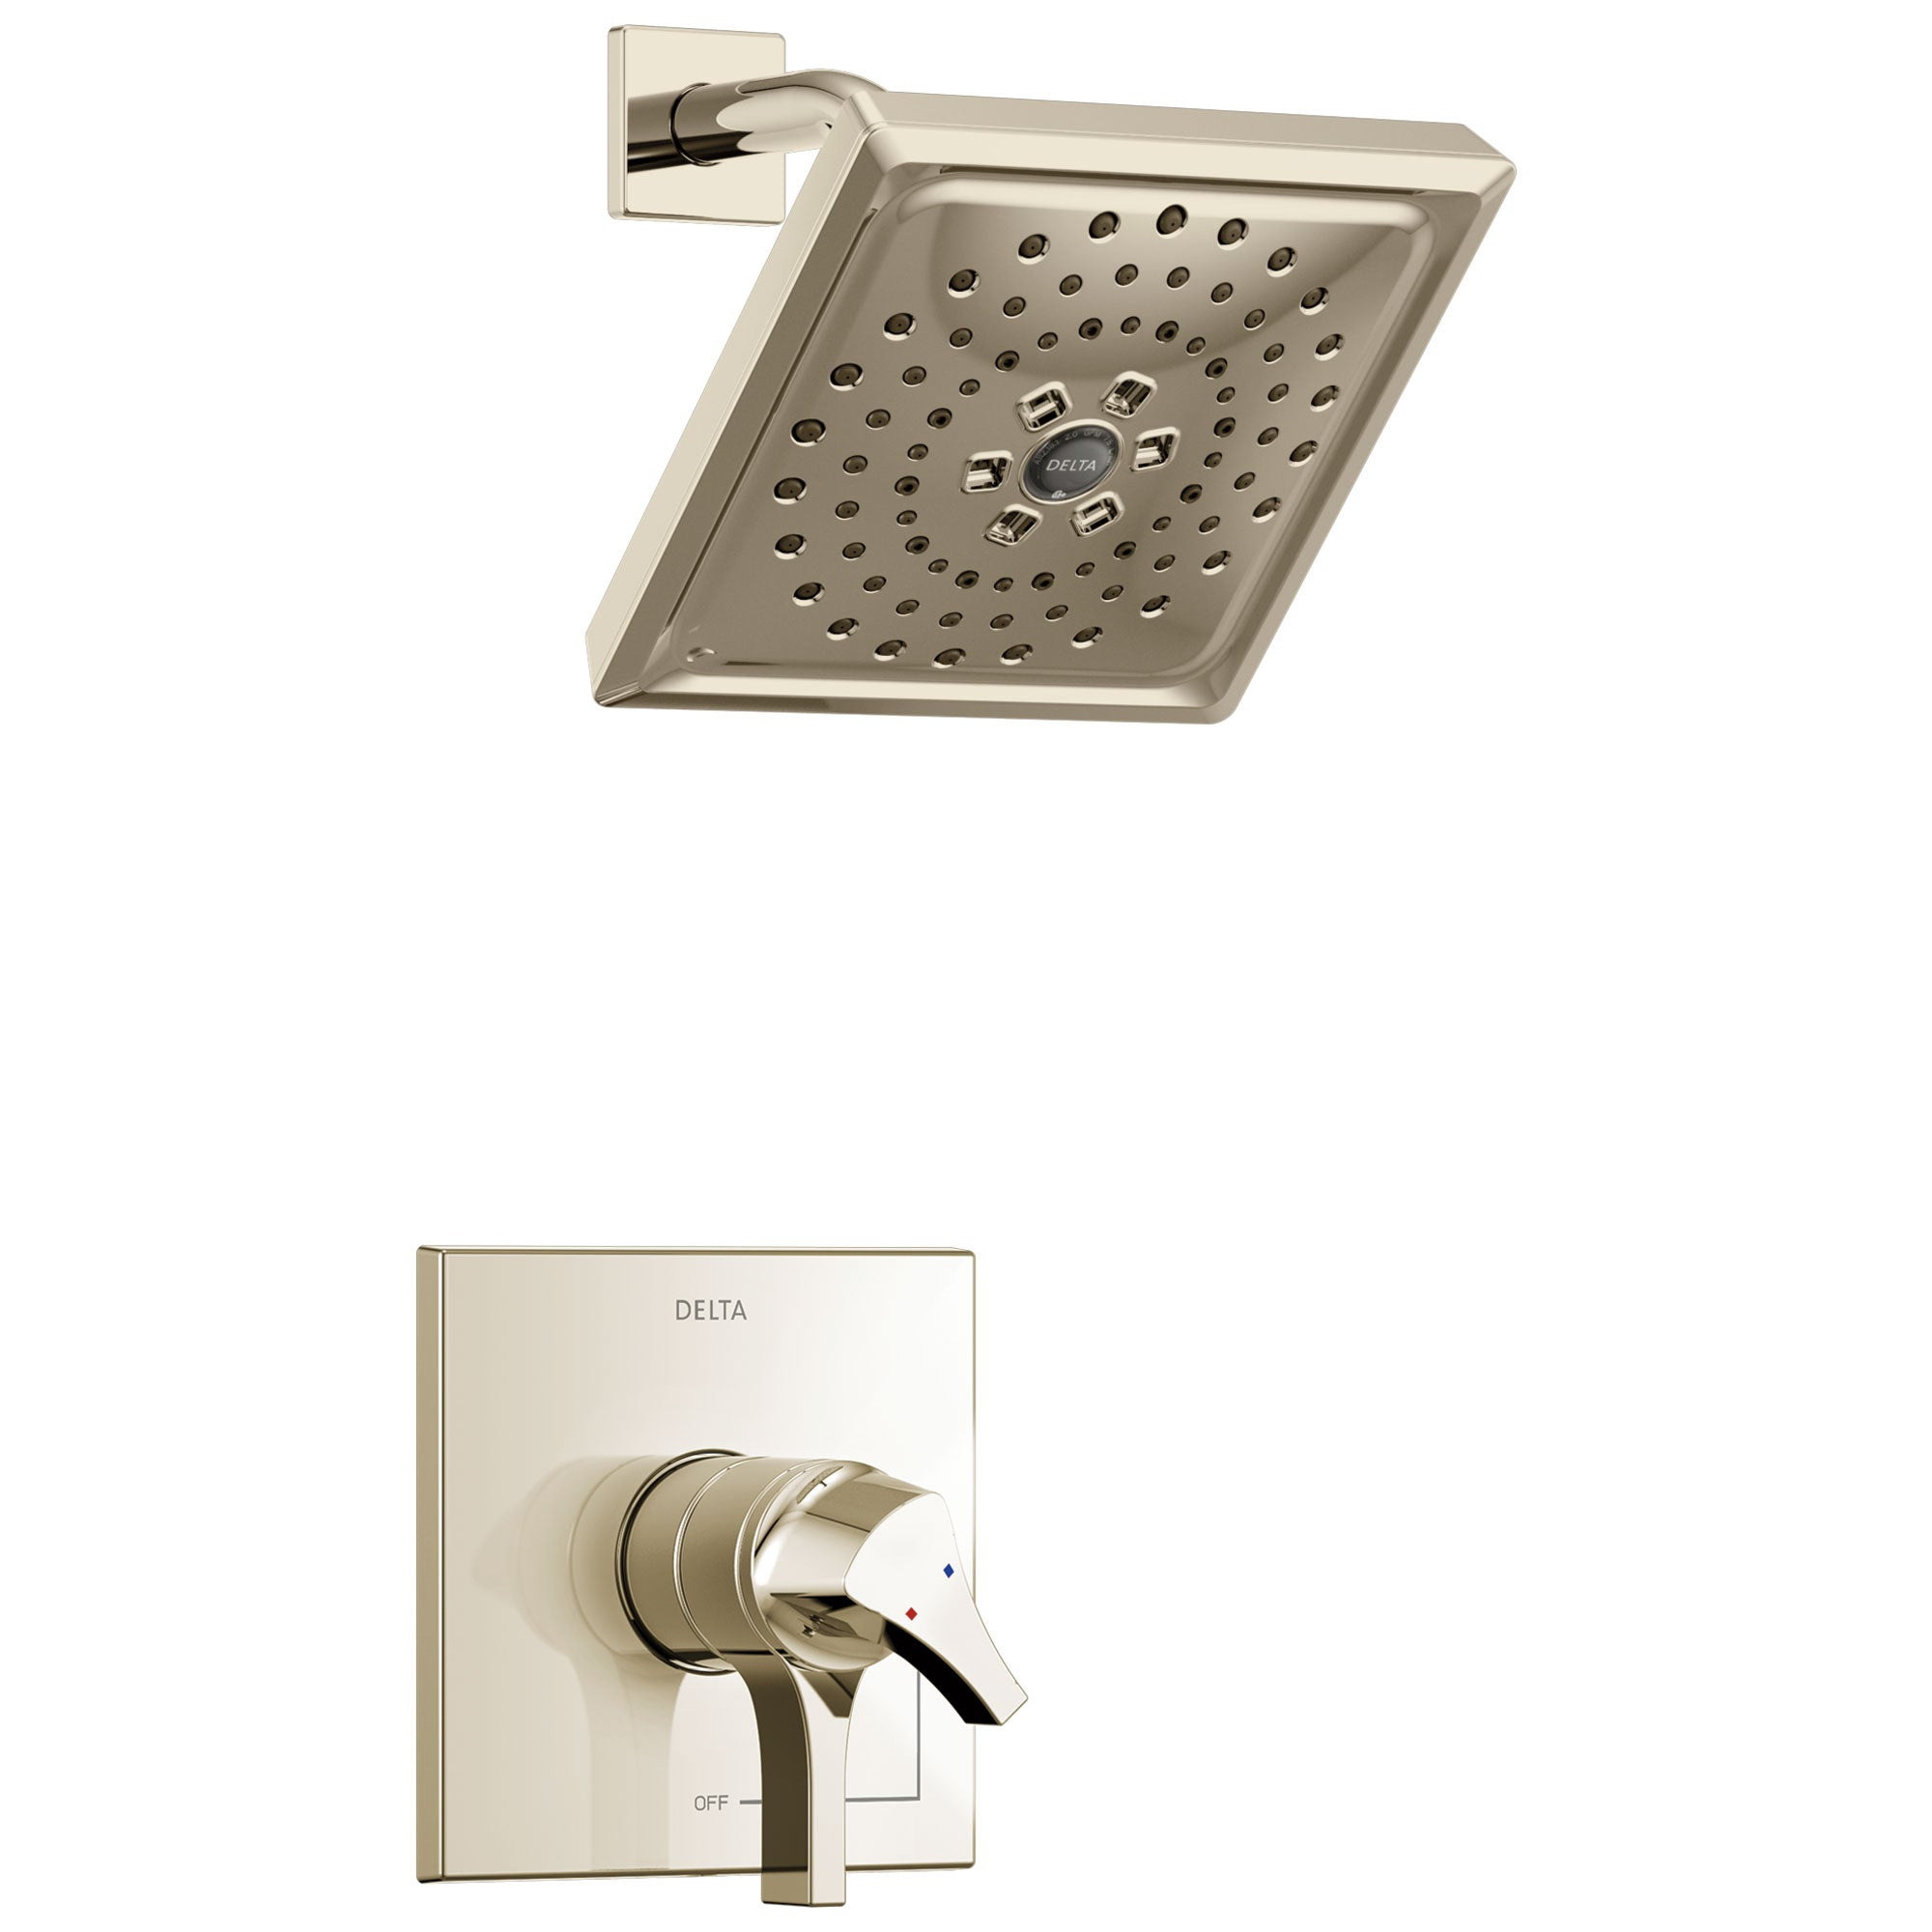 Delta Zura Collection Polished Nickel Modern Monitor 17 Dual Temperature and Pressure Shower only Faucet Control Handle Trim (Requires Valve) 743928